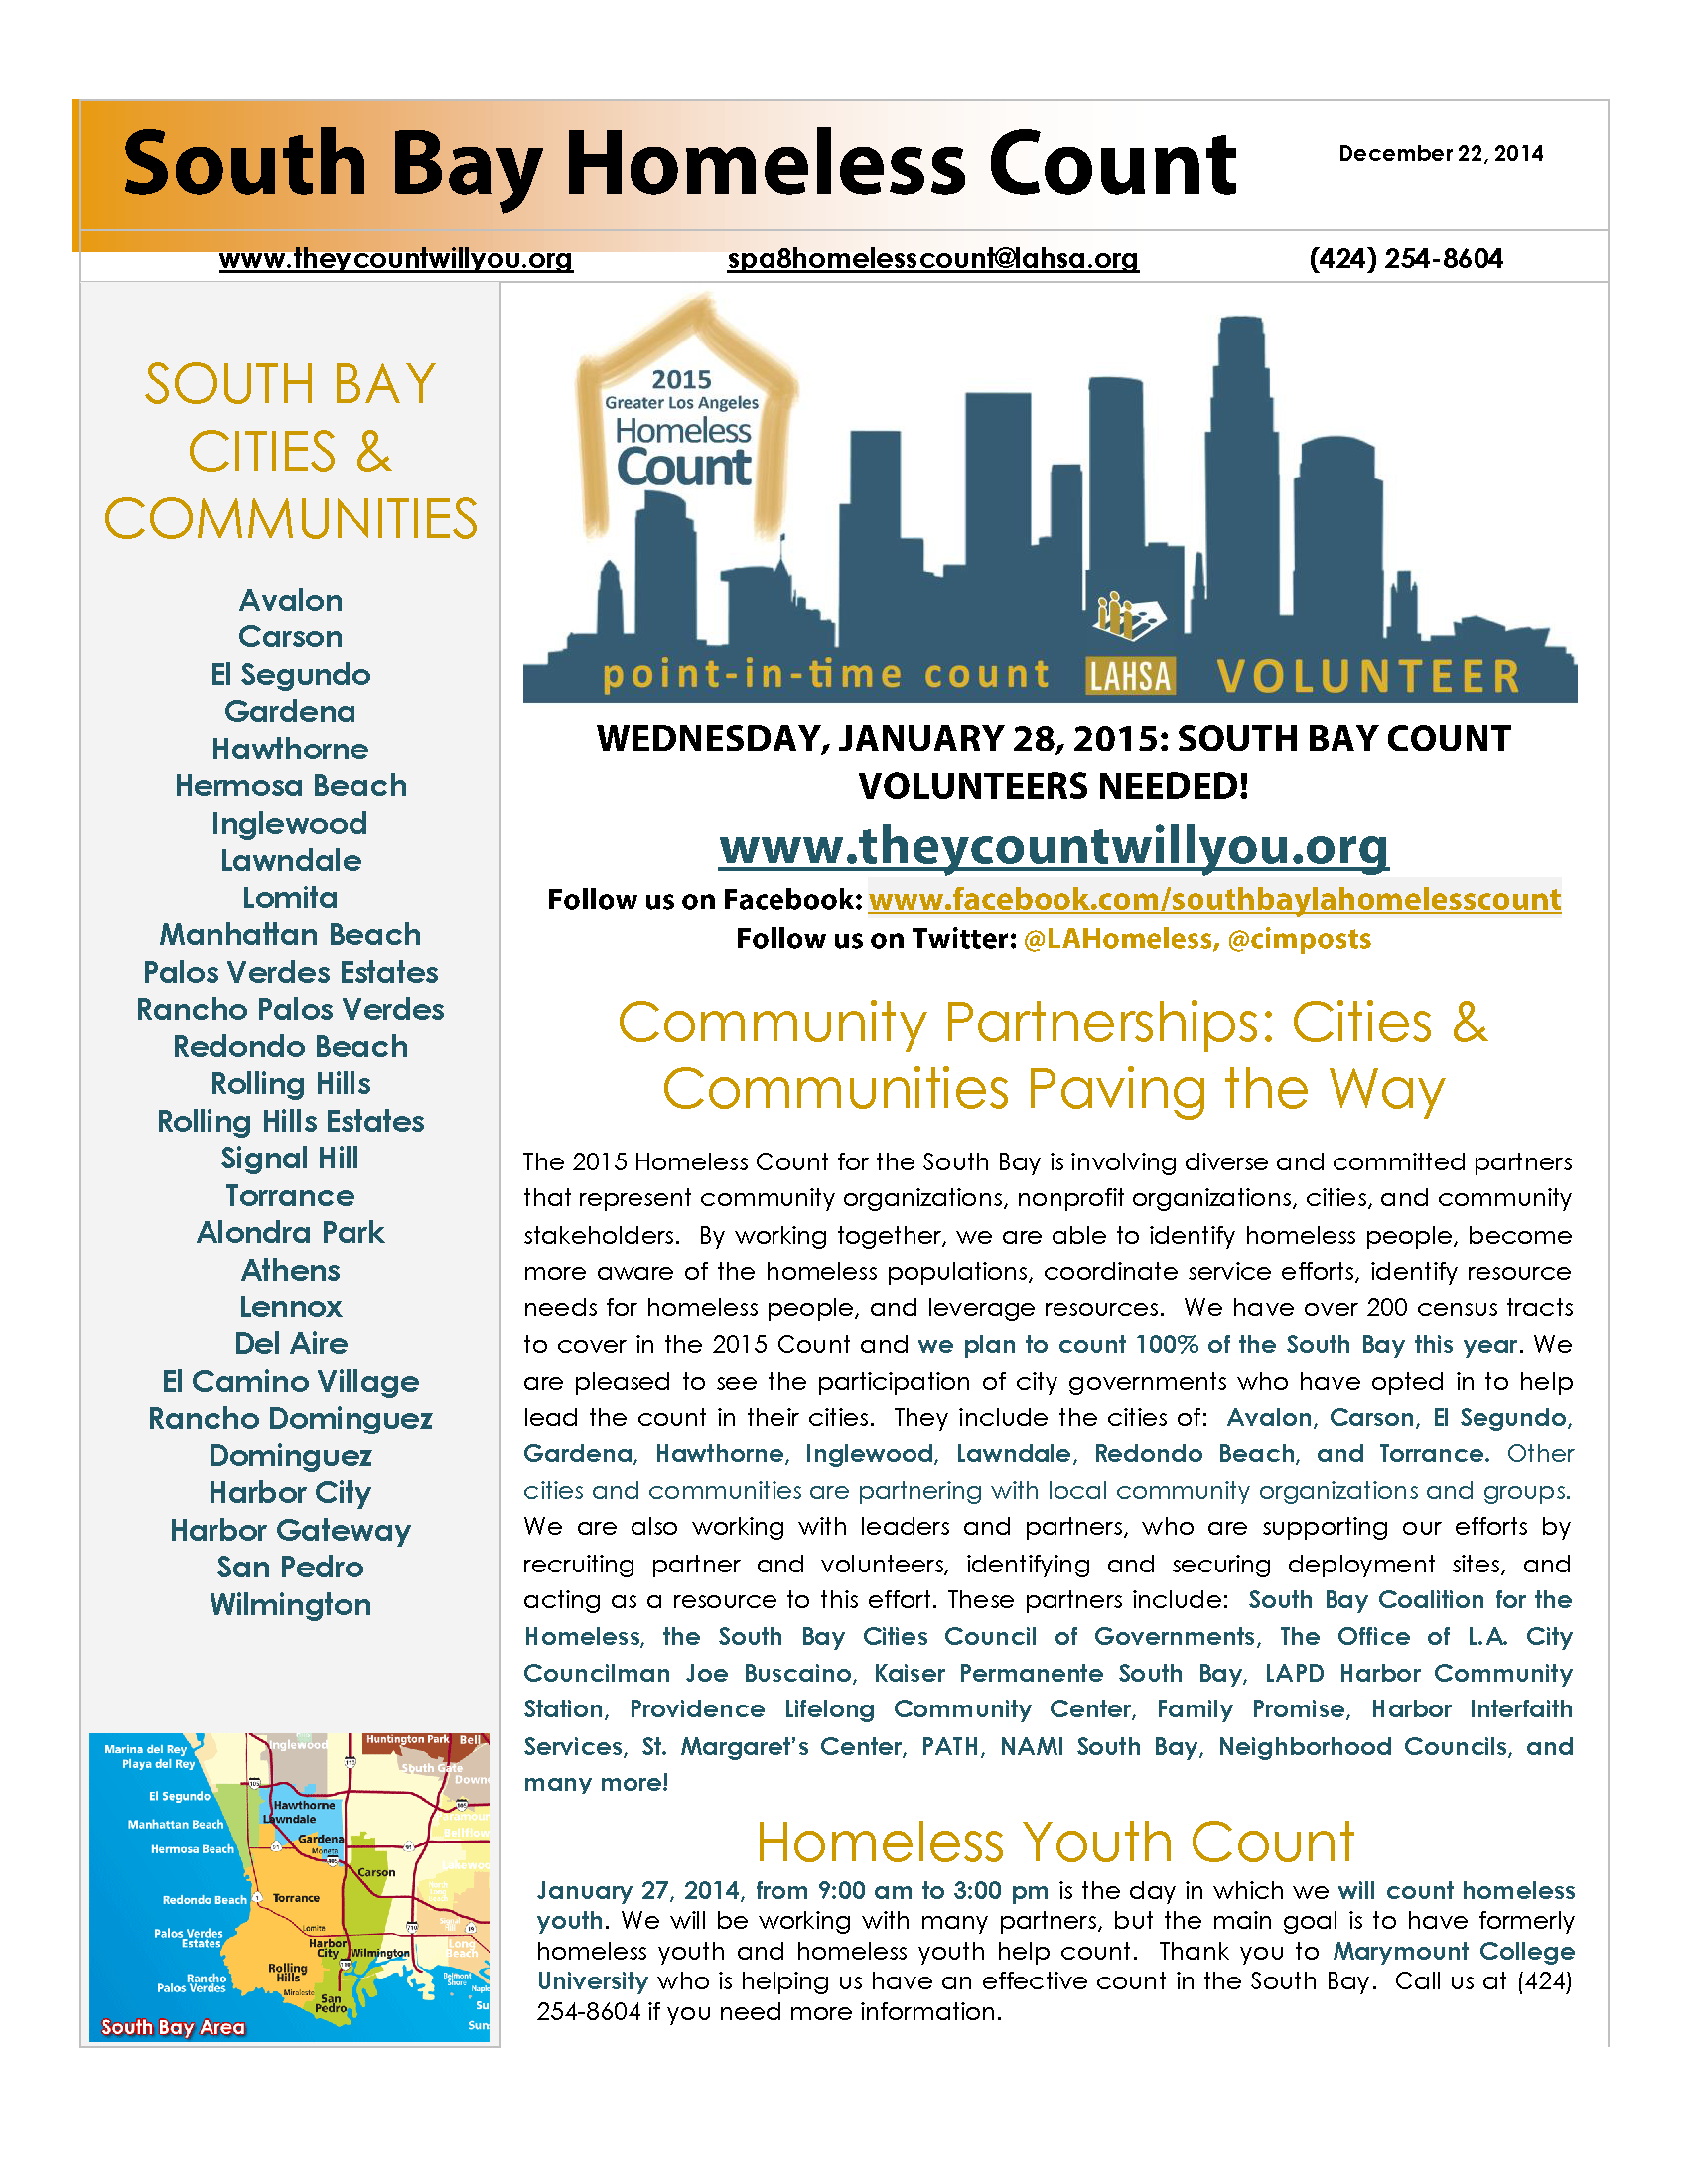 HC 2015 South Bay Update 12 16 2014 Final_Page_1